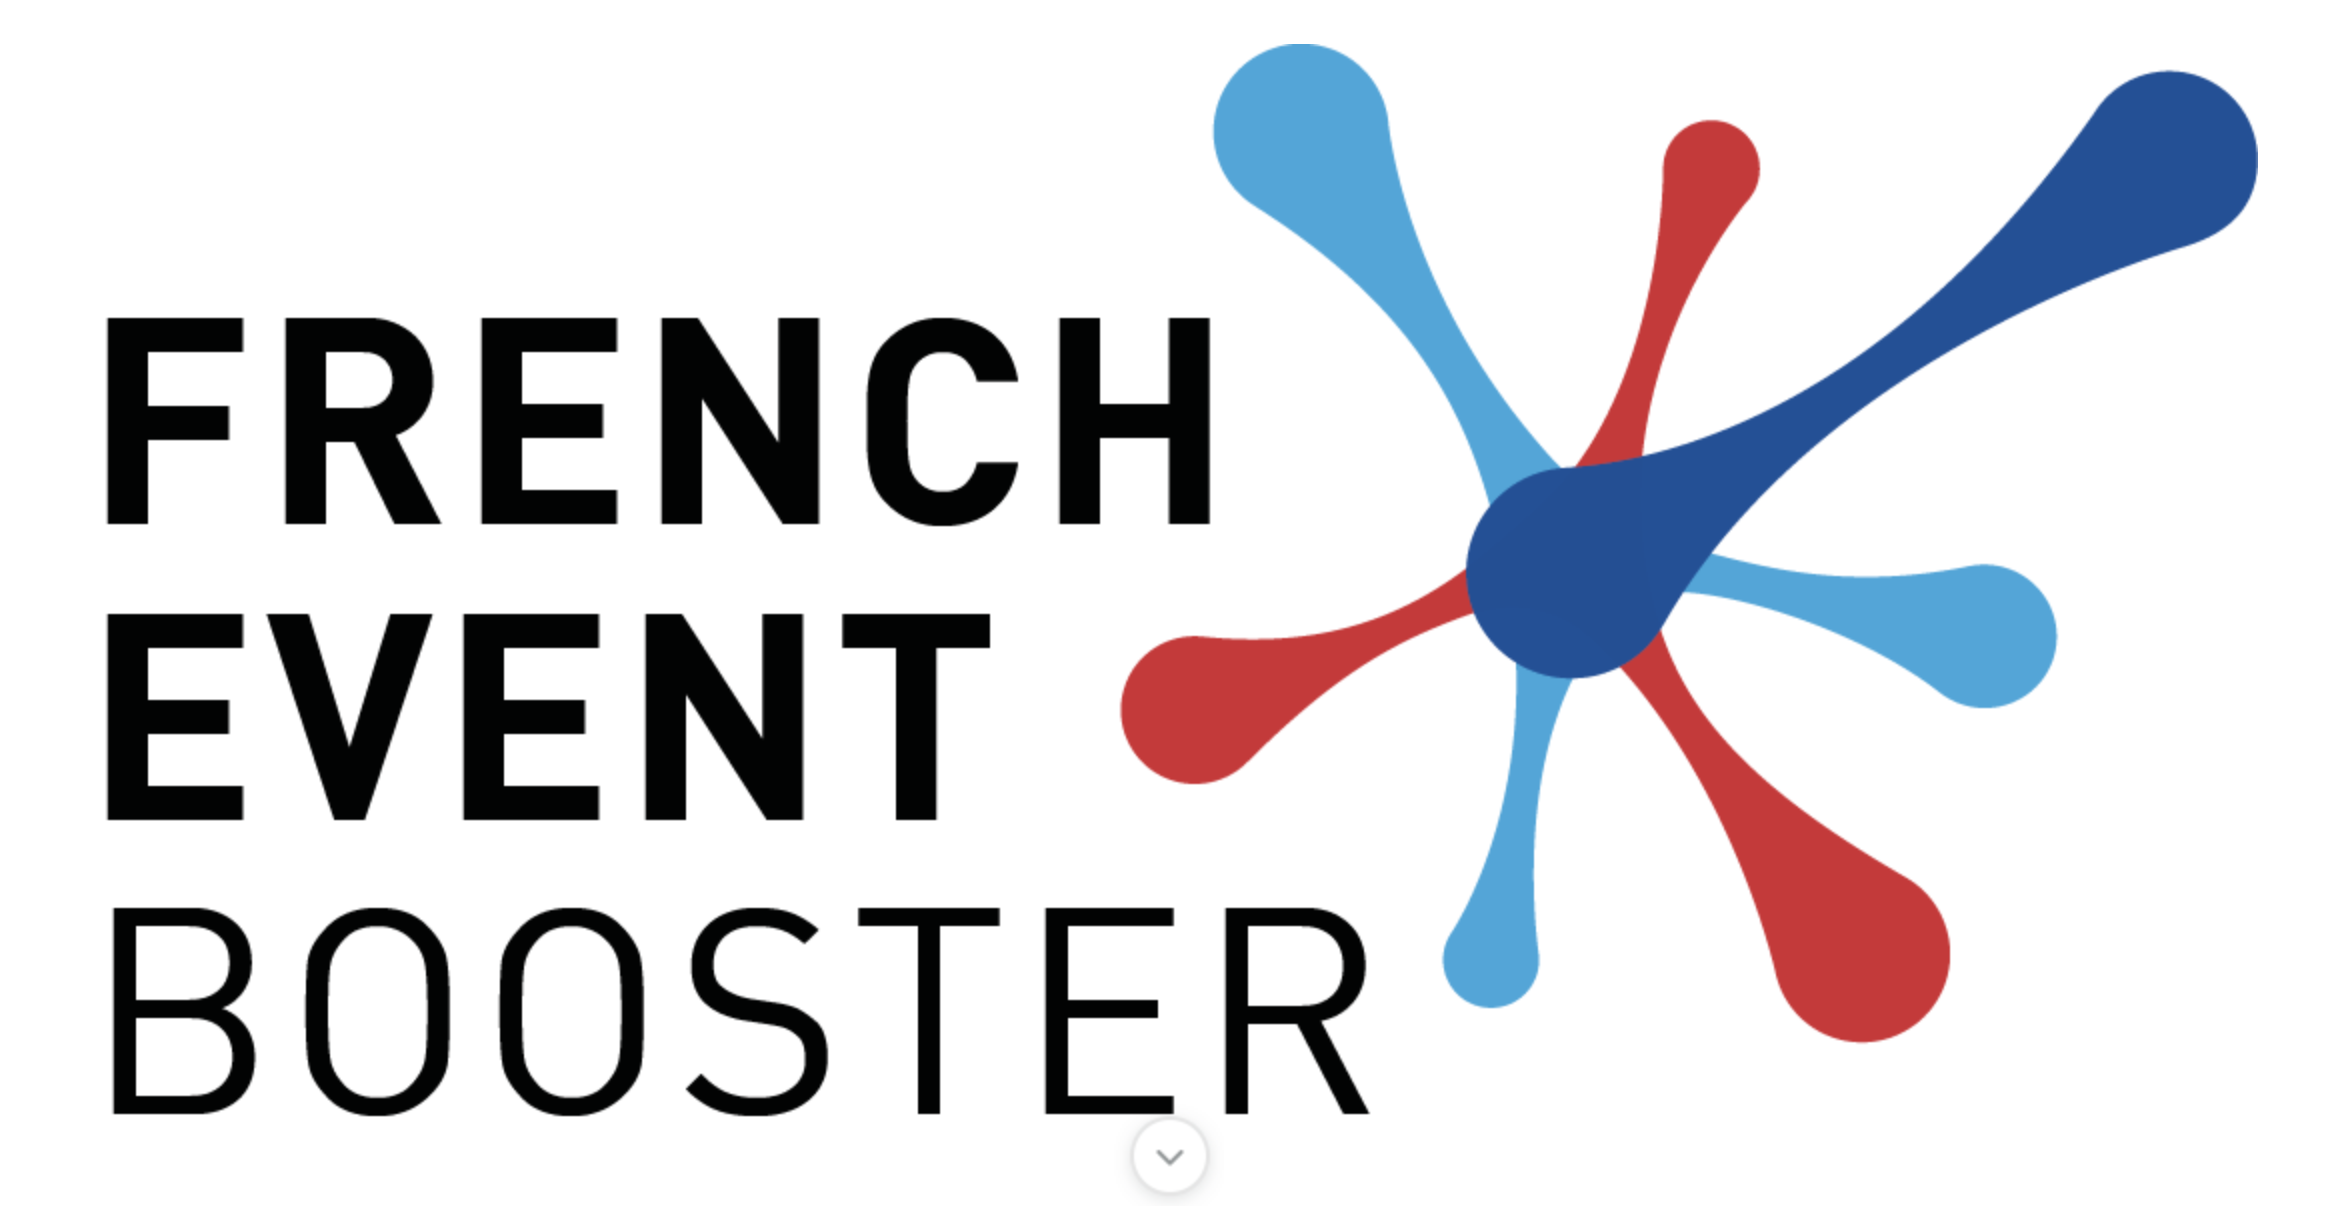 OPENevents is a partner of French Event Booster